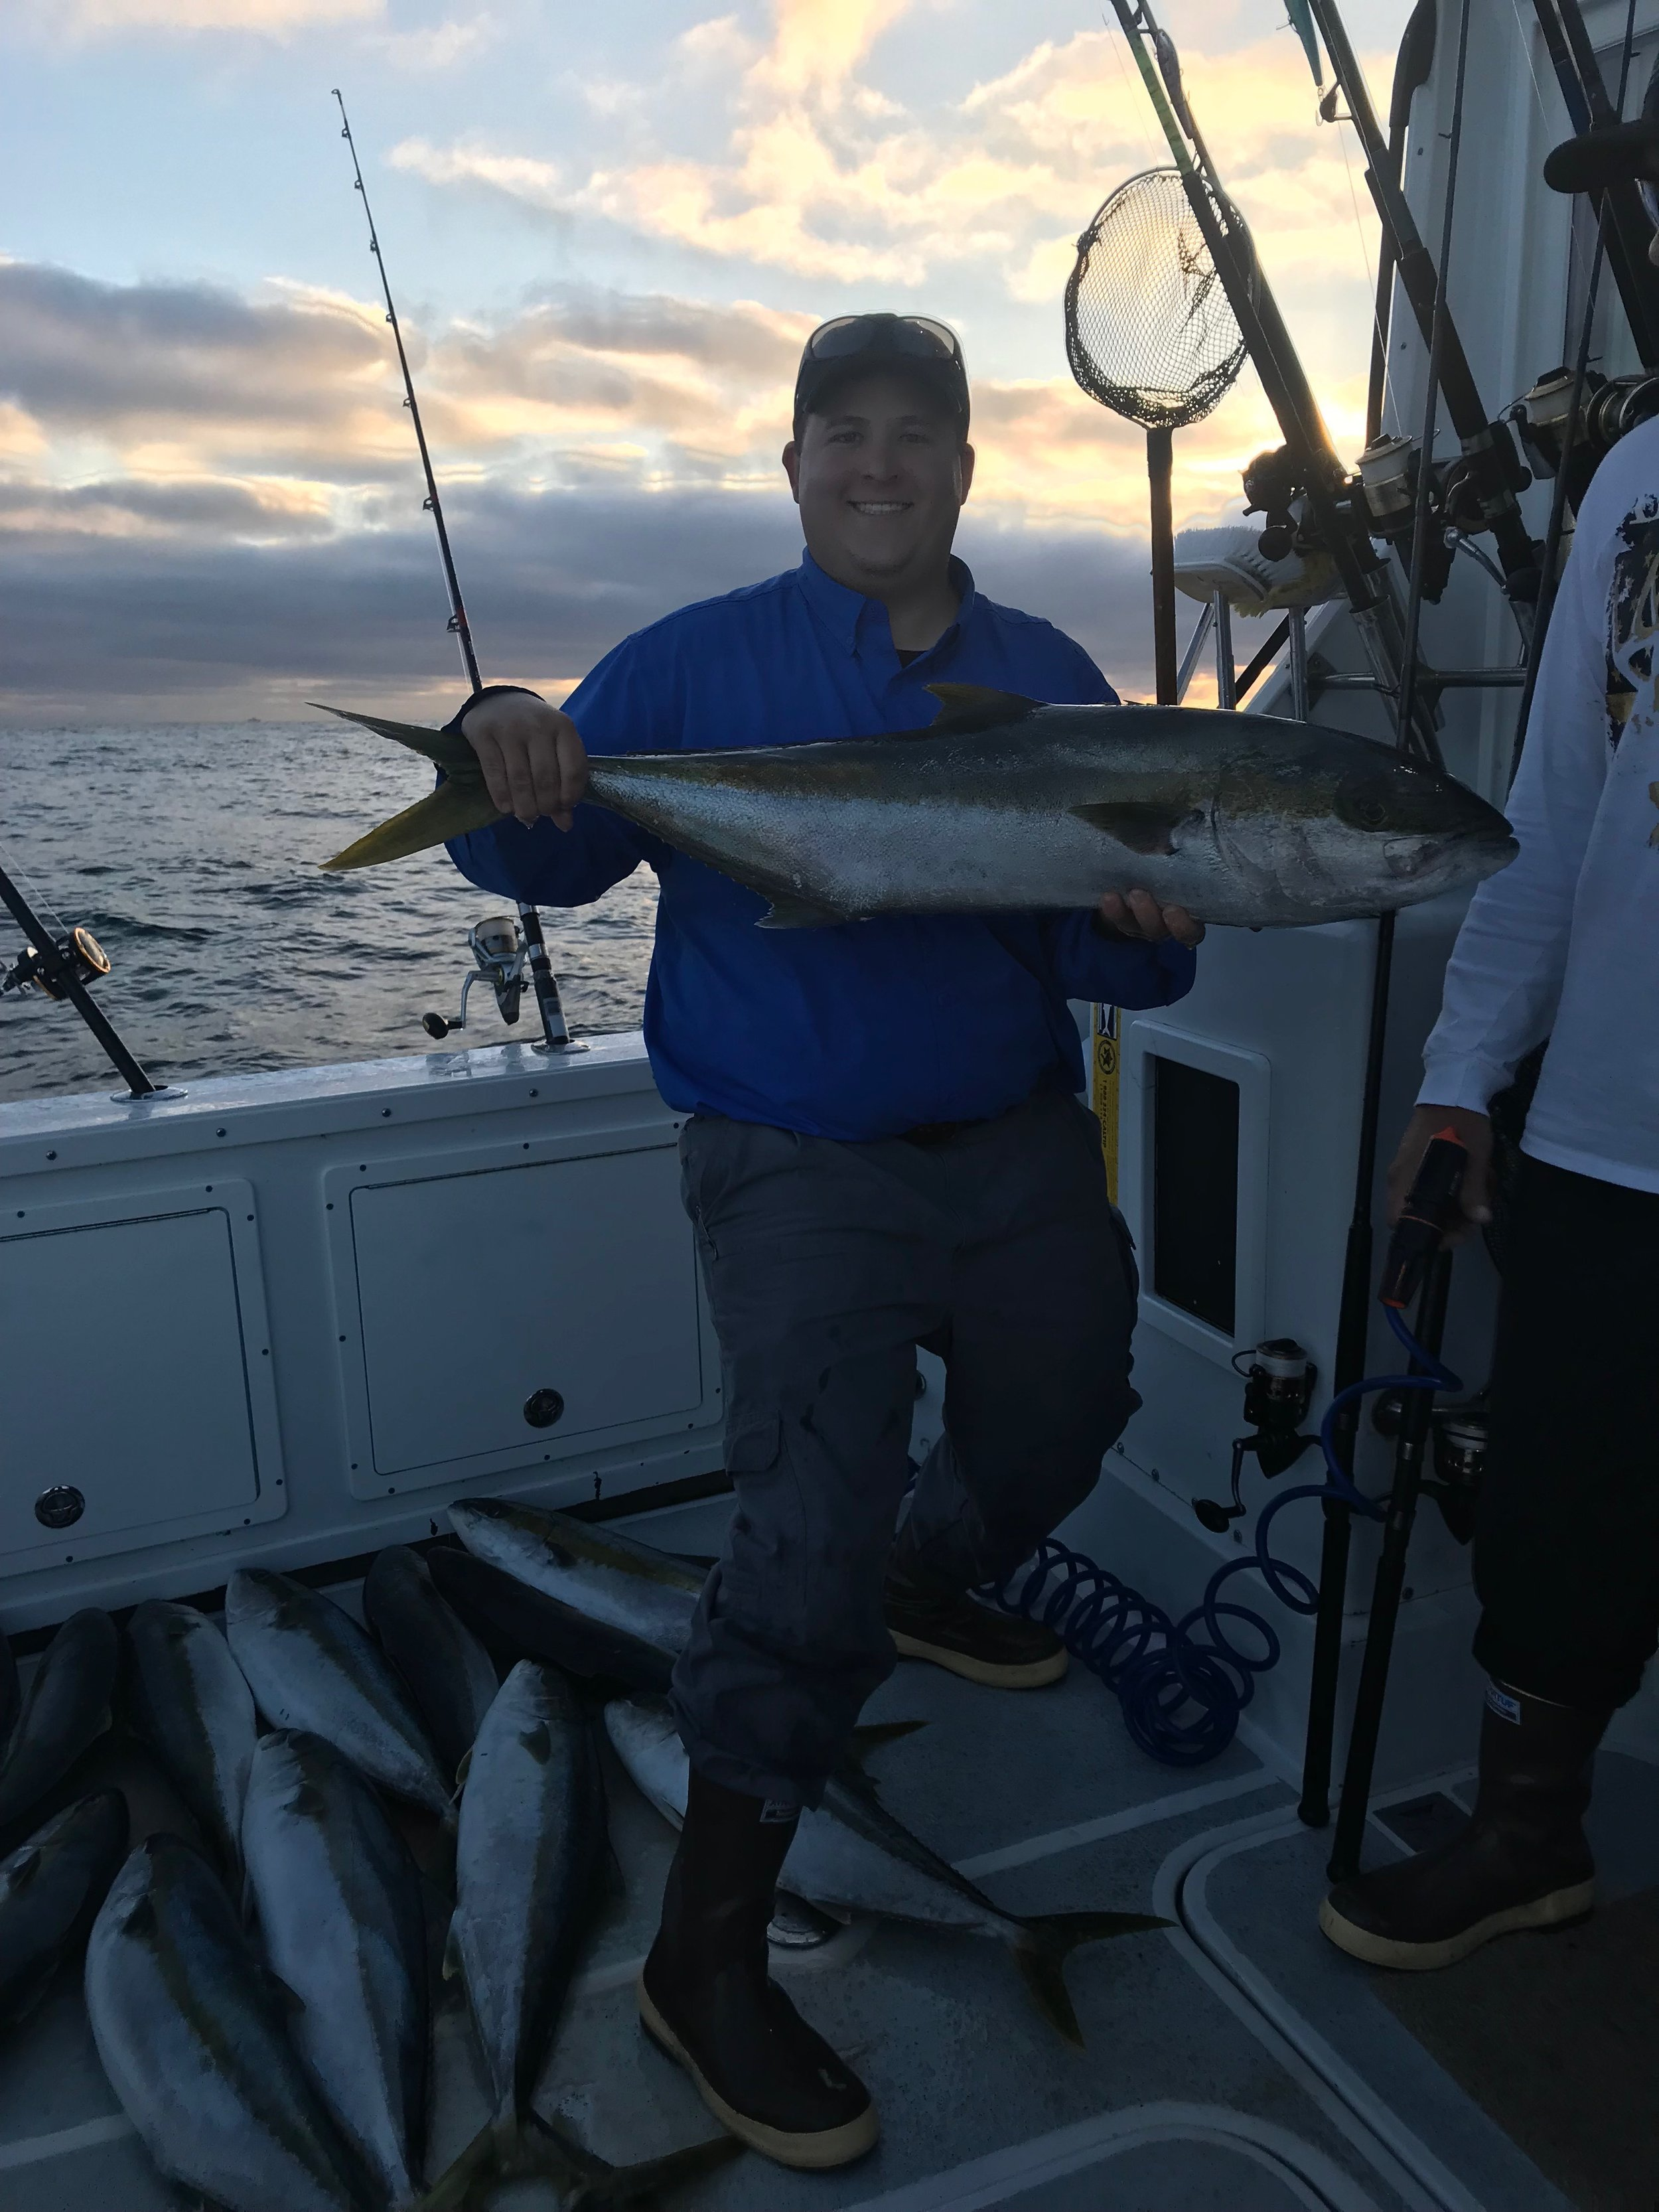 - August-10-2019Found the right kelp again for our group. We ended up withLIMITS of 12-25 lb Yellowtail!